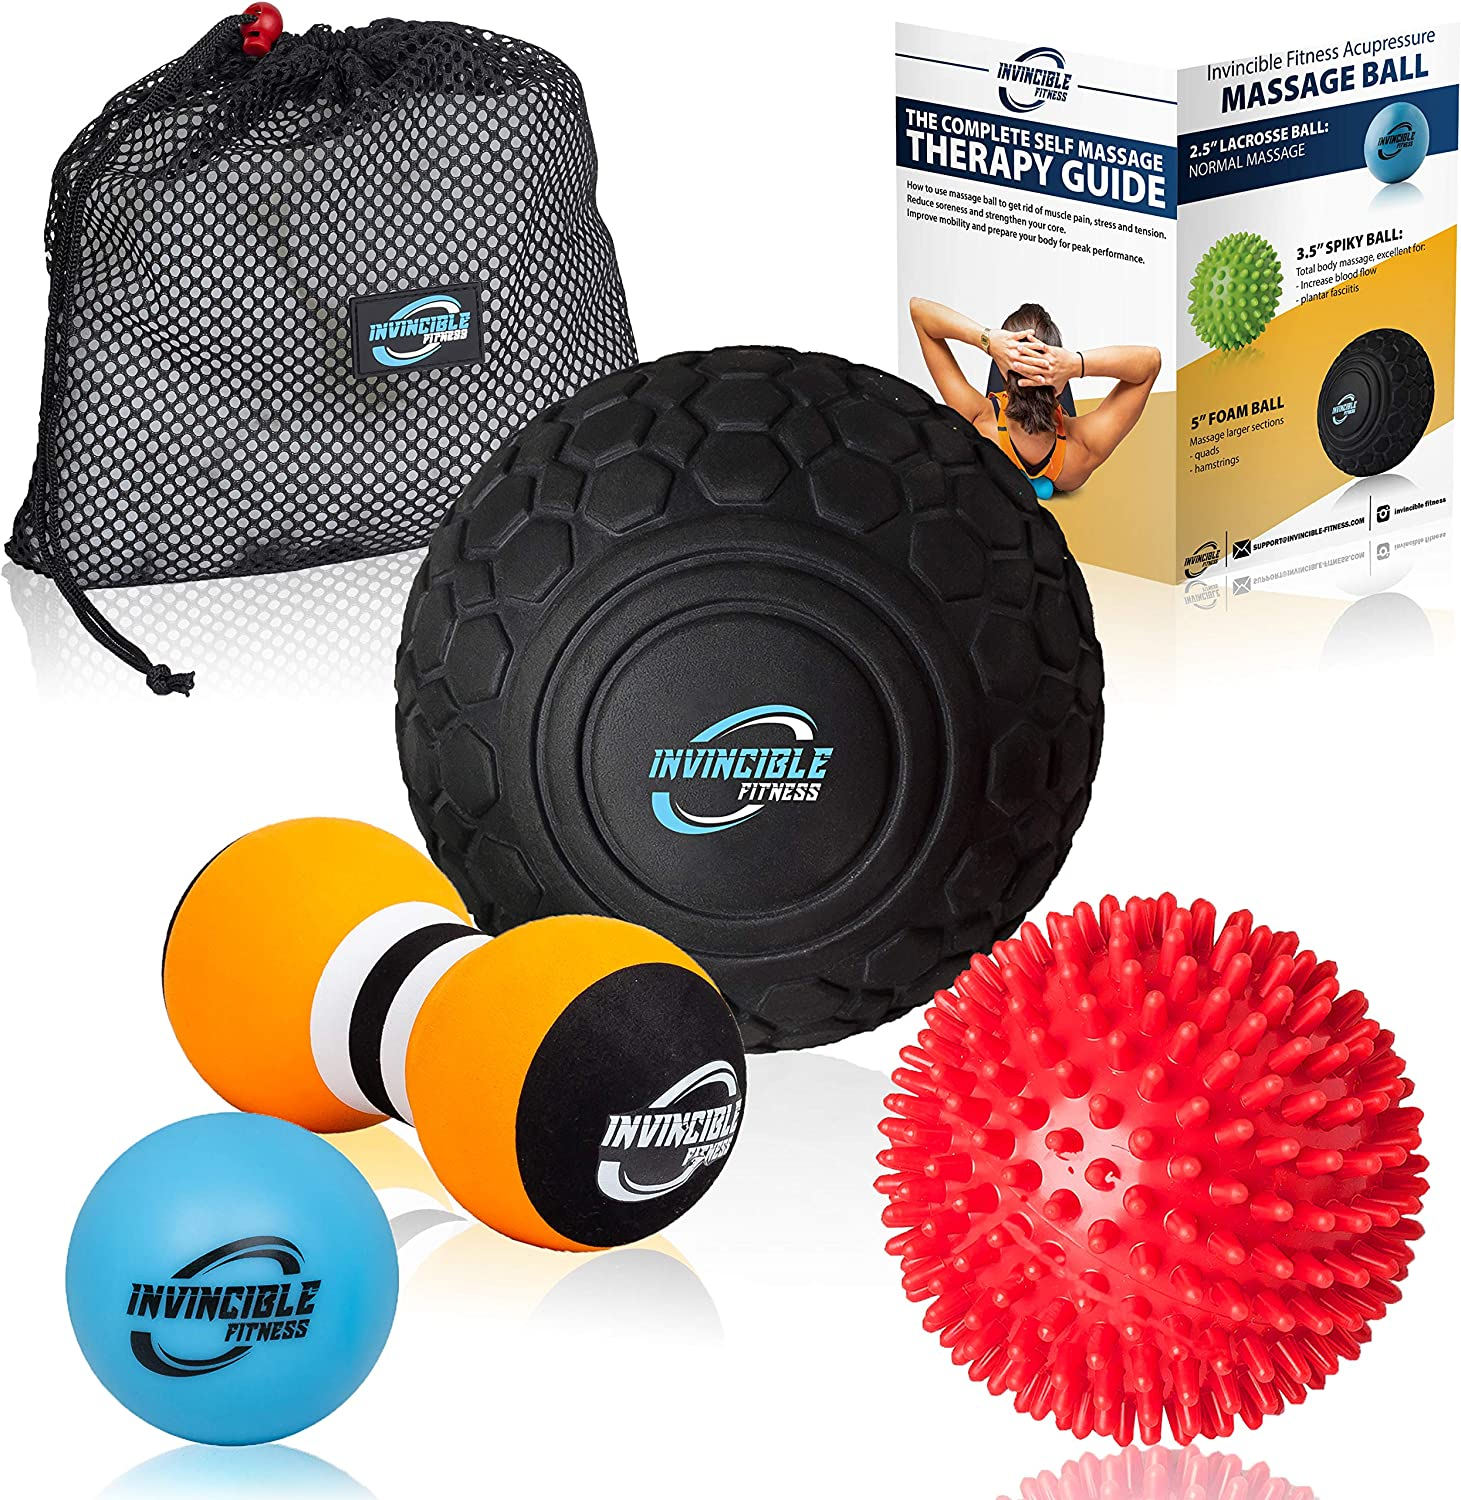 Deep Limited time for free shipping Tissue Max 67% OFF Massage Ball Set - Includes Foam Mobility Roller 5